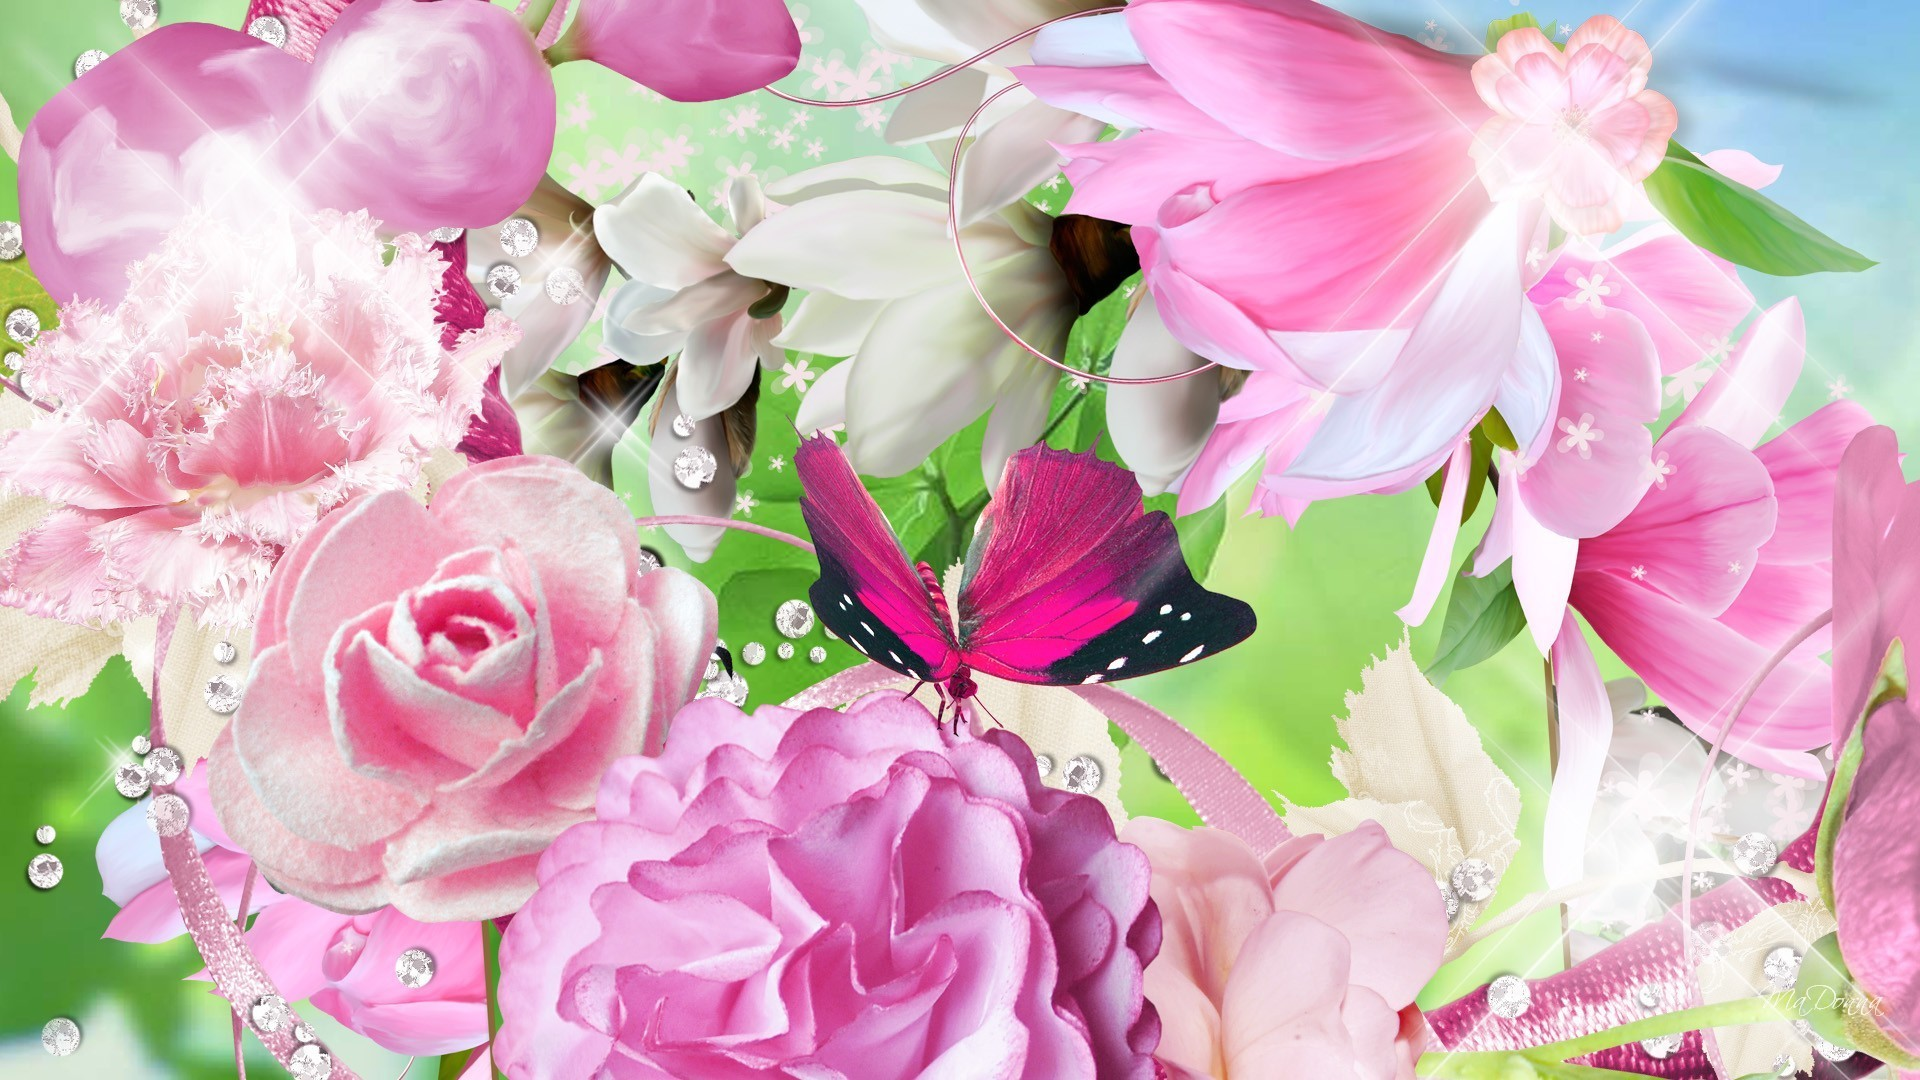 1920x1080 January 6, 2017 - Summer Bouquet Flowers Butterfly Roses Pink Peony Fleurs  Papillon Spring Floral